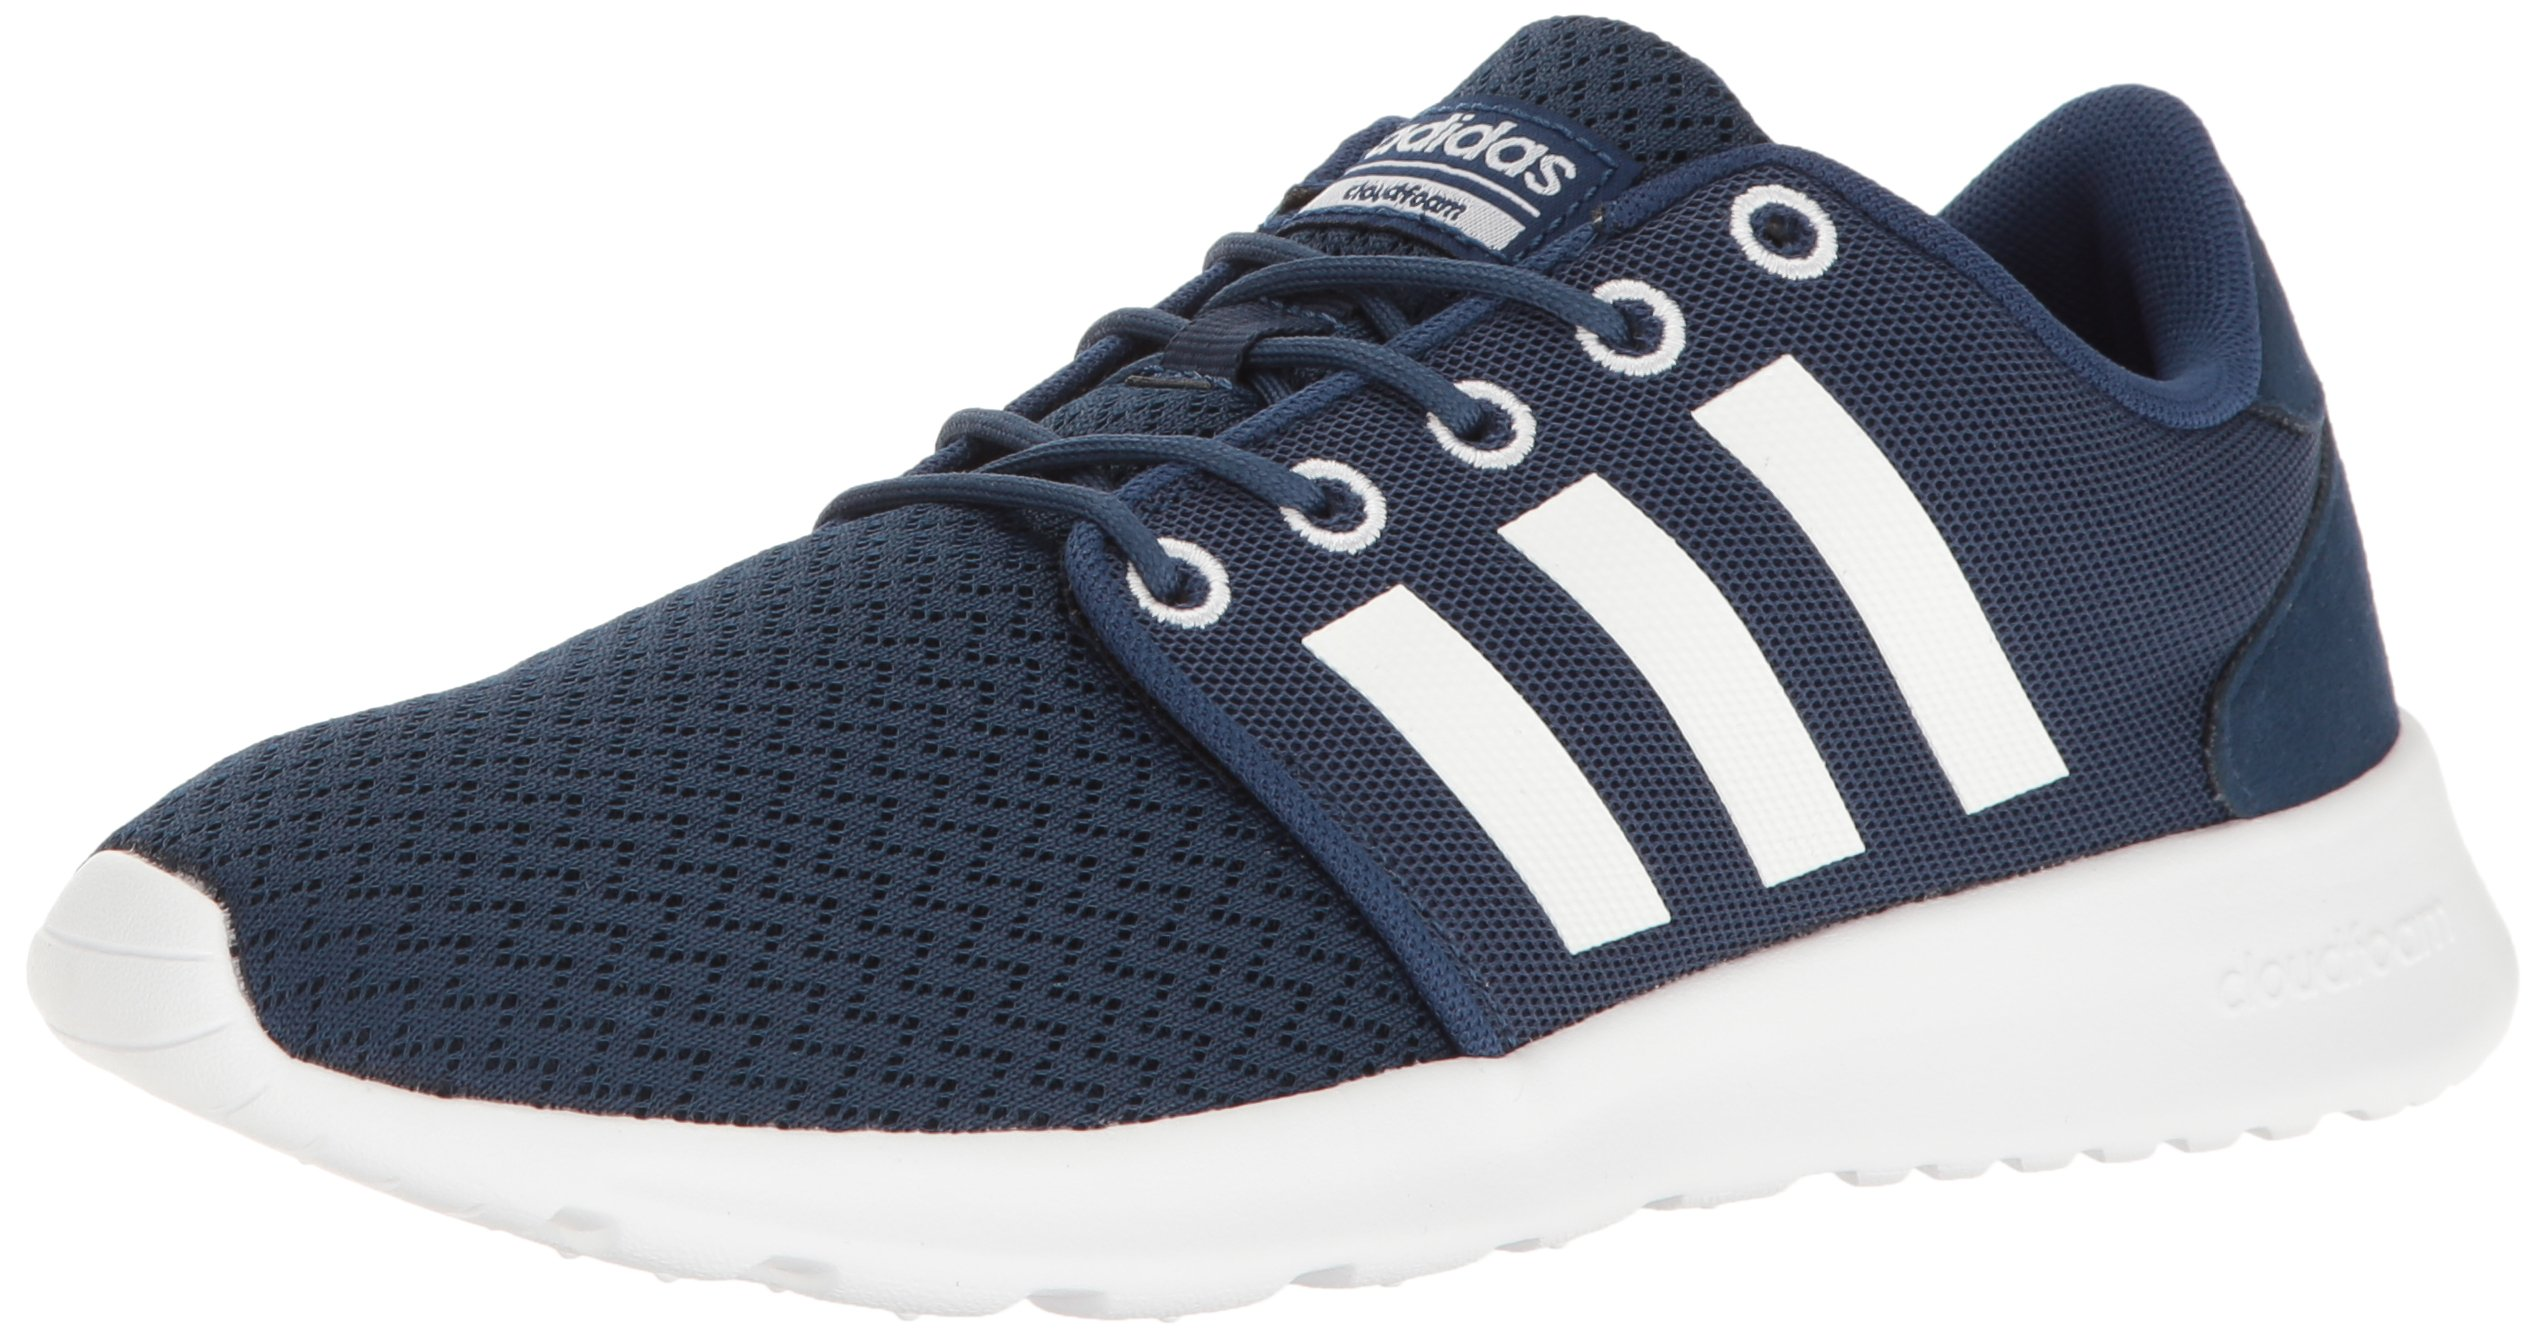 adidas Women's Cloudfoam QT Racer Running Shoe, Mystery Blue/White/Glow Orange, 11 B - Medium by adidas